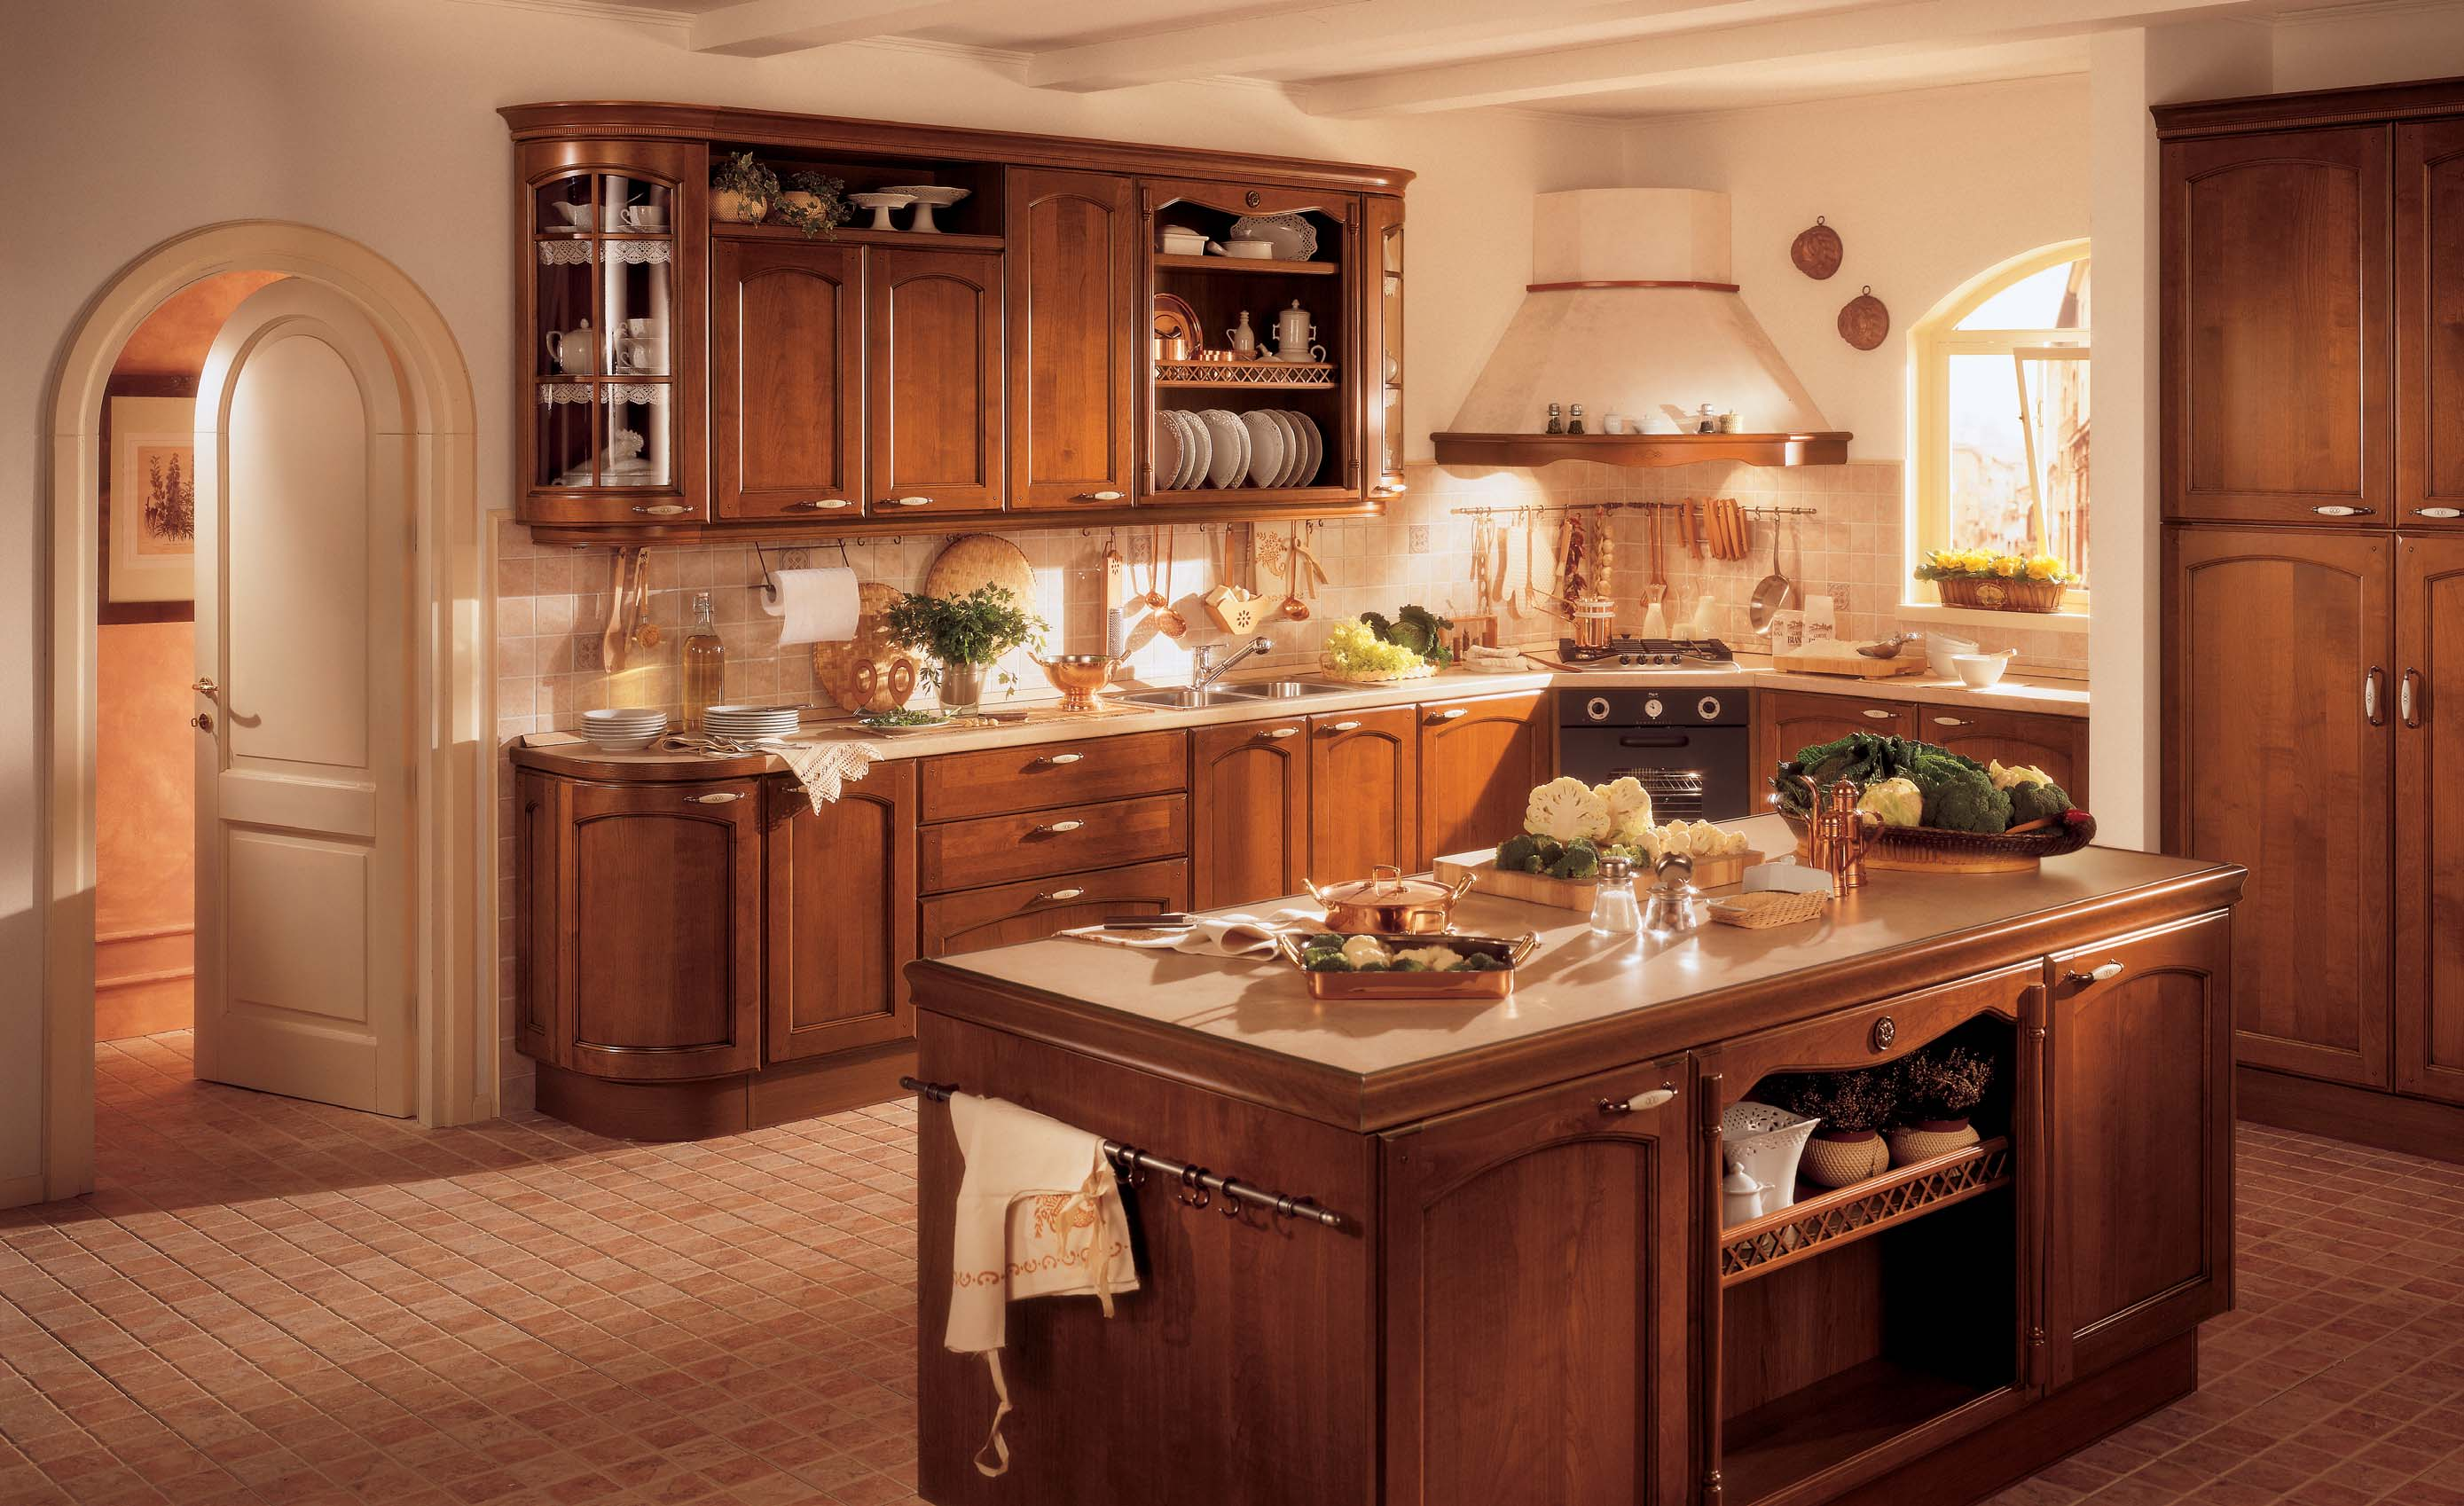 Epoca classic kitchen interior design for Kitchen design decorating ideas